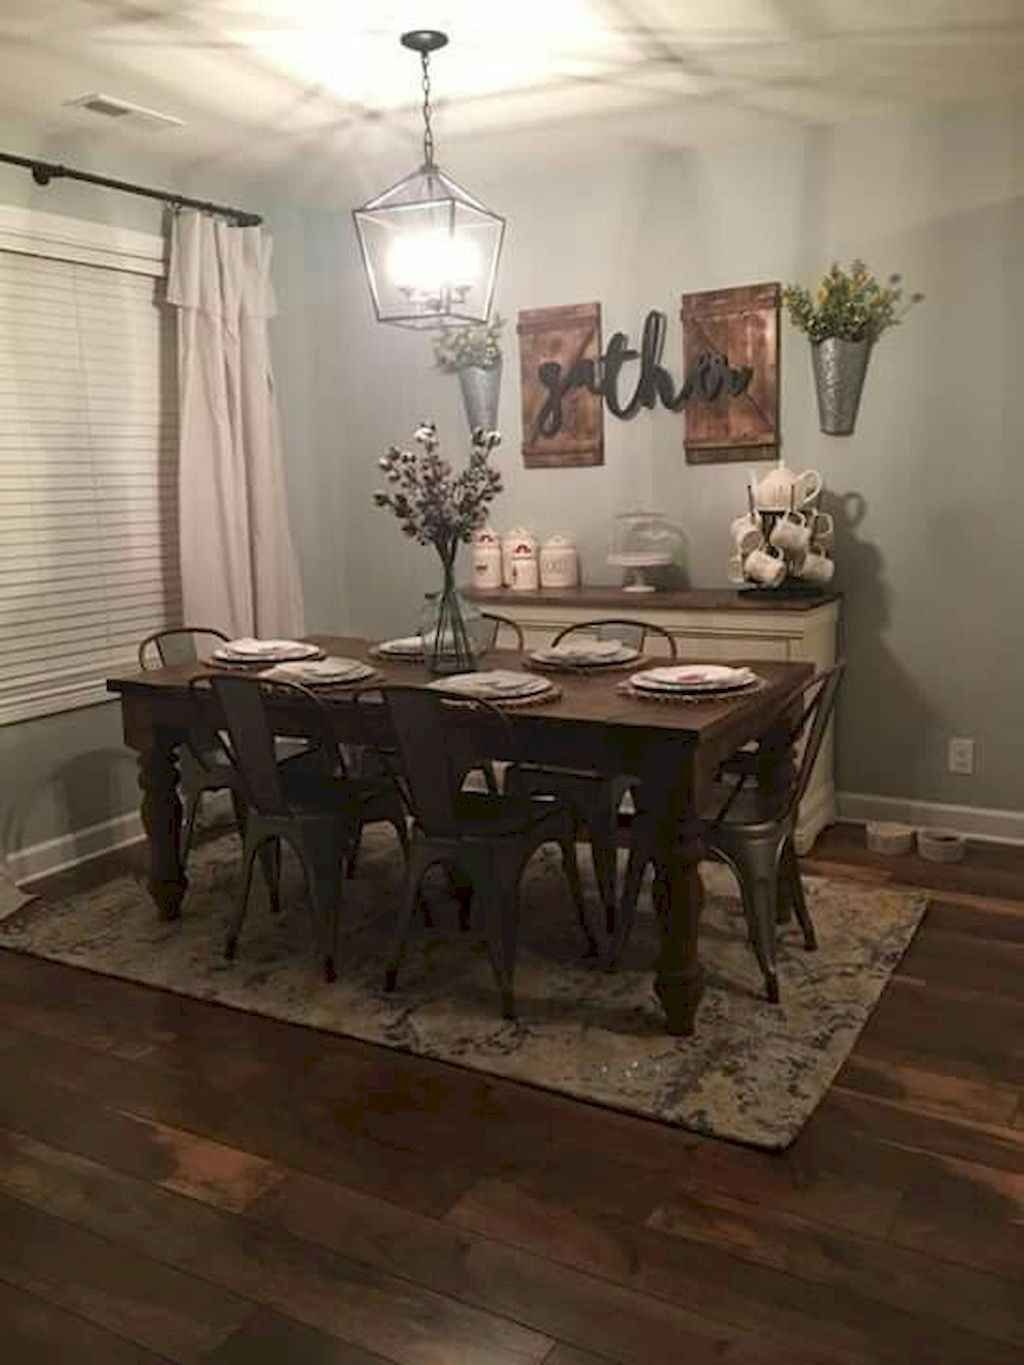 The Best Rustic Dining Room Decoration Ideas 34